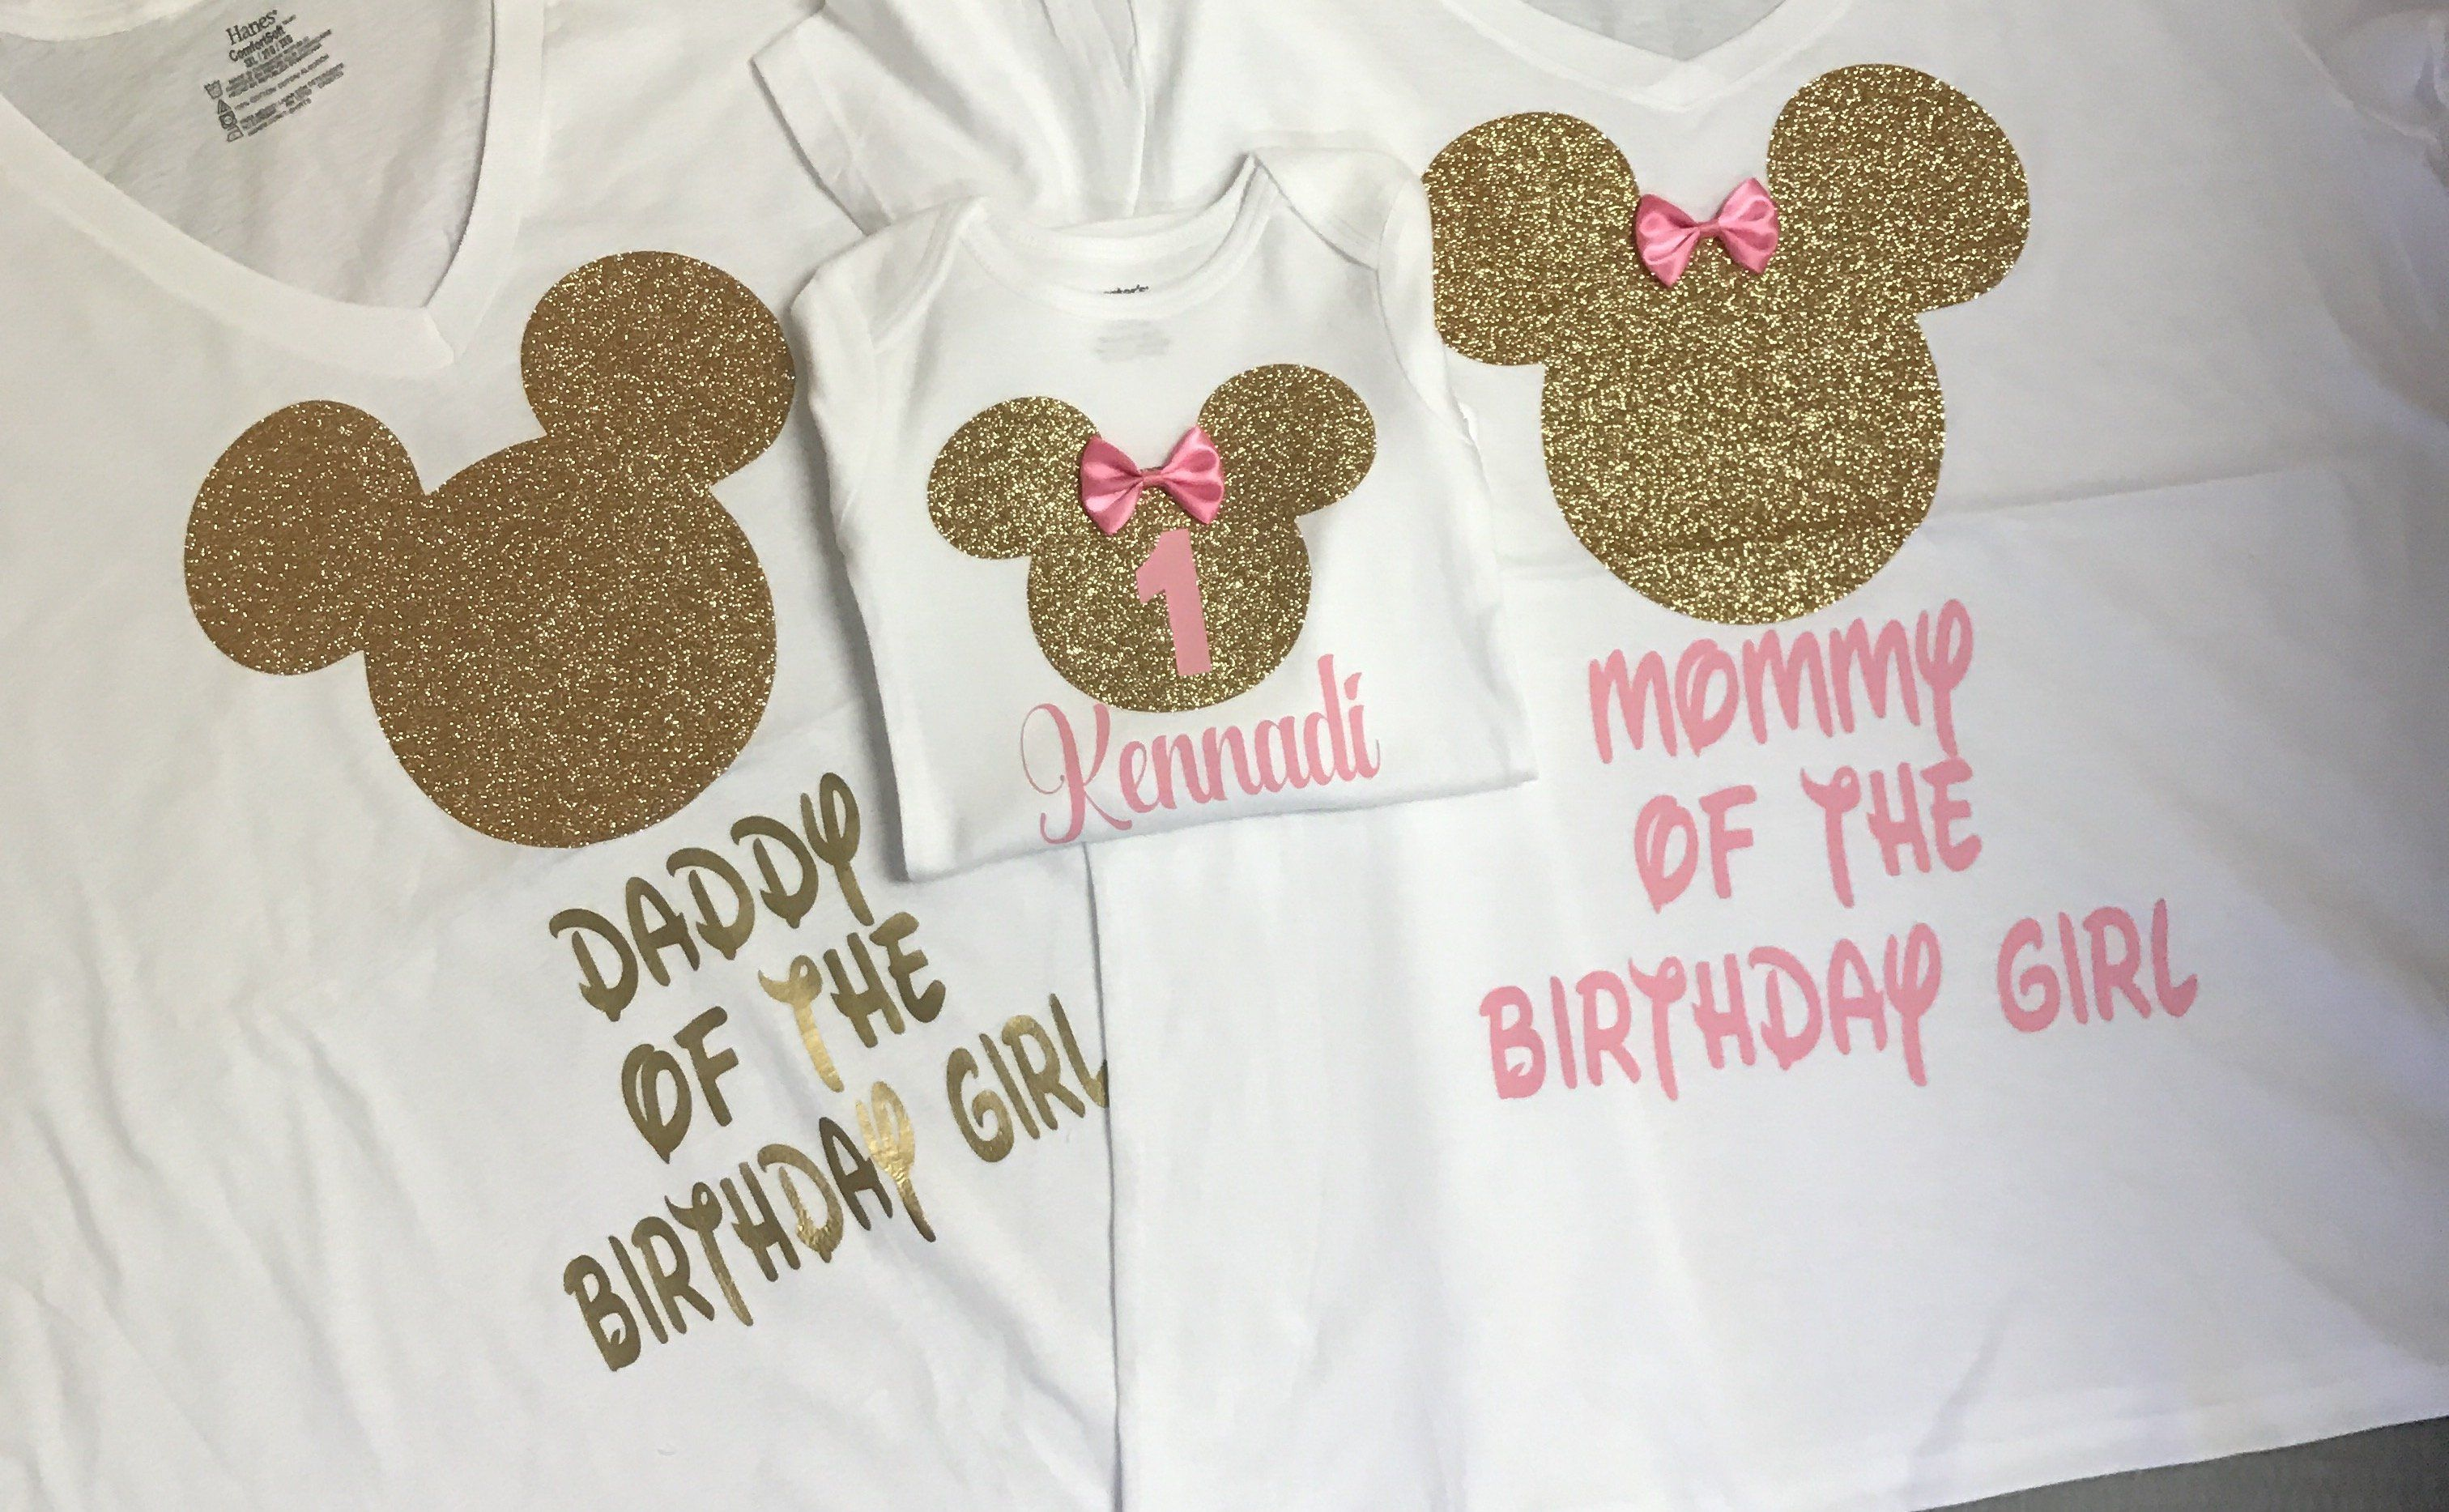 08f6185a Mom and dad Mickey Mouse shirts, first birthday mom shirt, daddy of the  birthday girl, mom and dad matching shirts, first birthday outfit